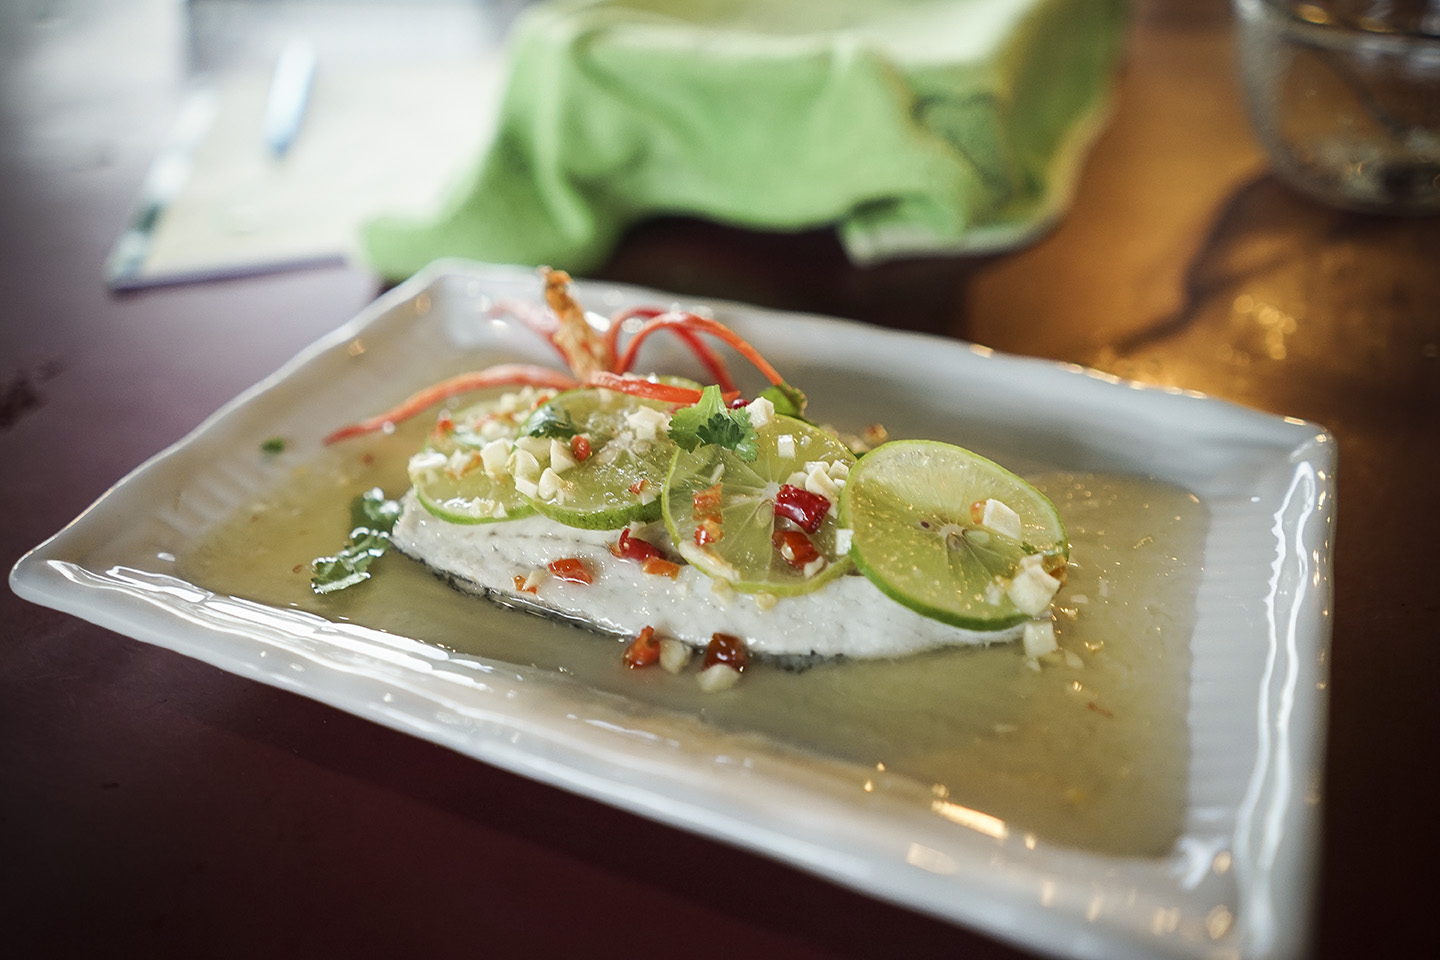 Steamed fish with Lime and Chili